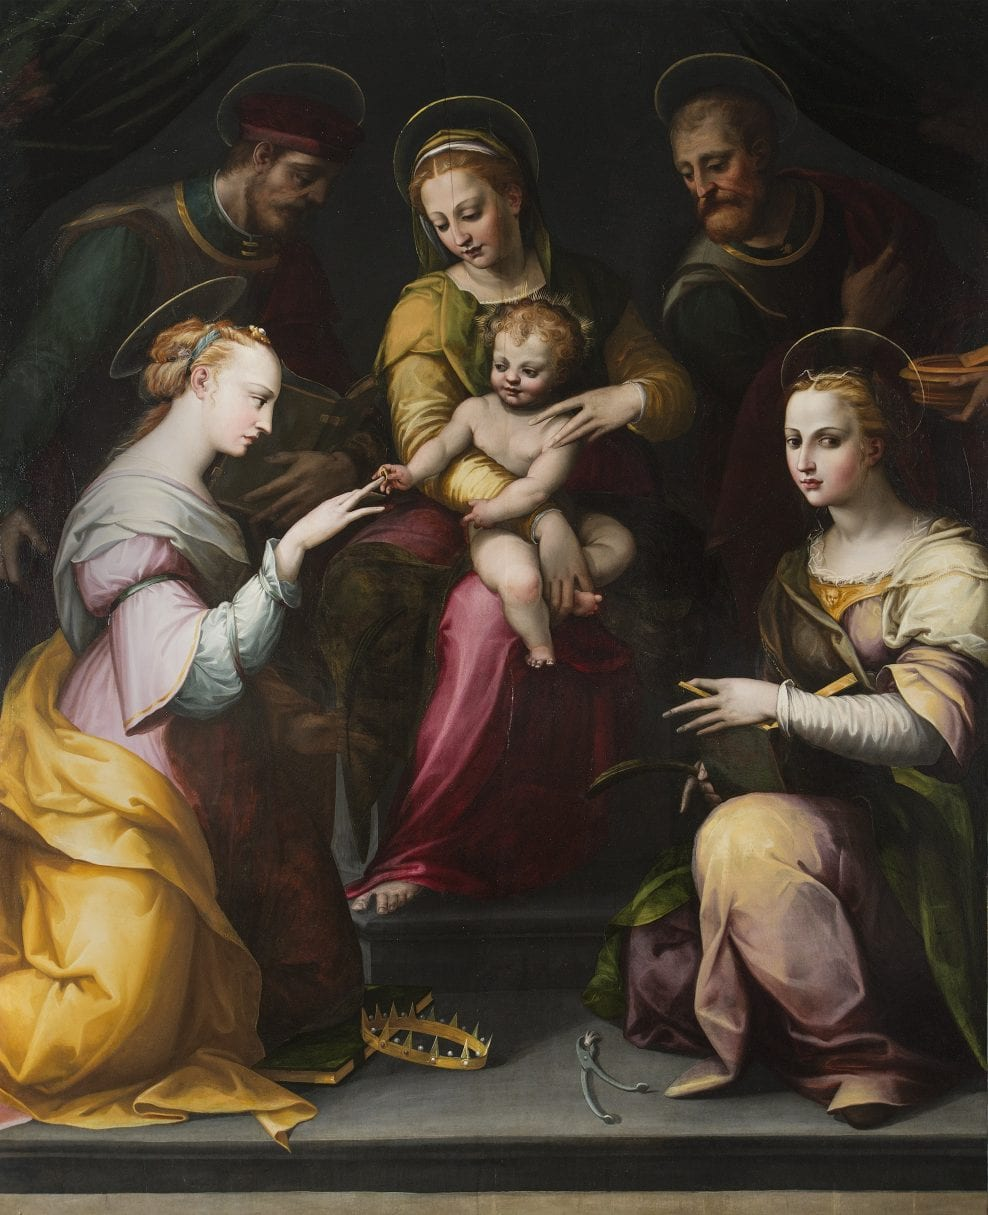 'The Mystic Marriage of St. Catherine with St. Apollonia, St. Joseph & St. John the Evangelist' att. to Francesco Brini (active 1540-1586)